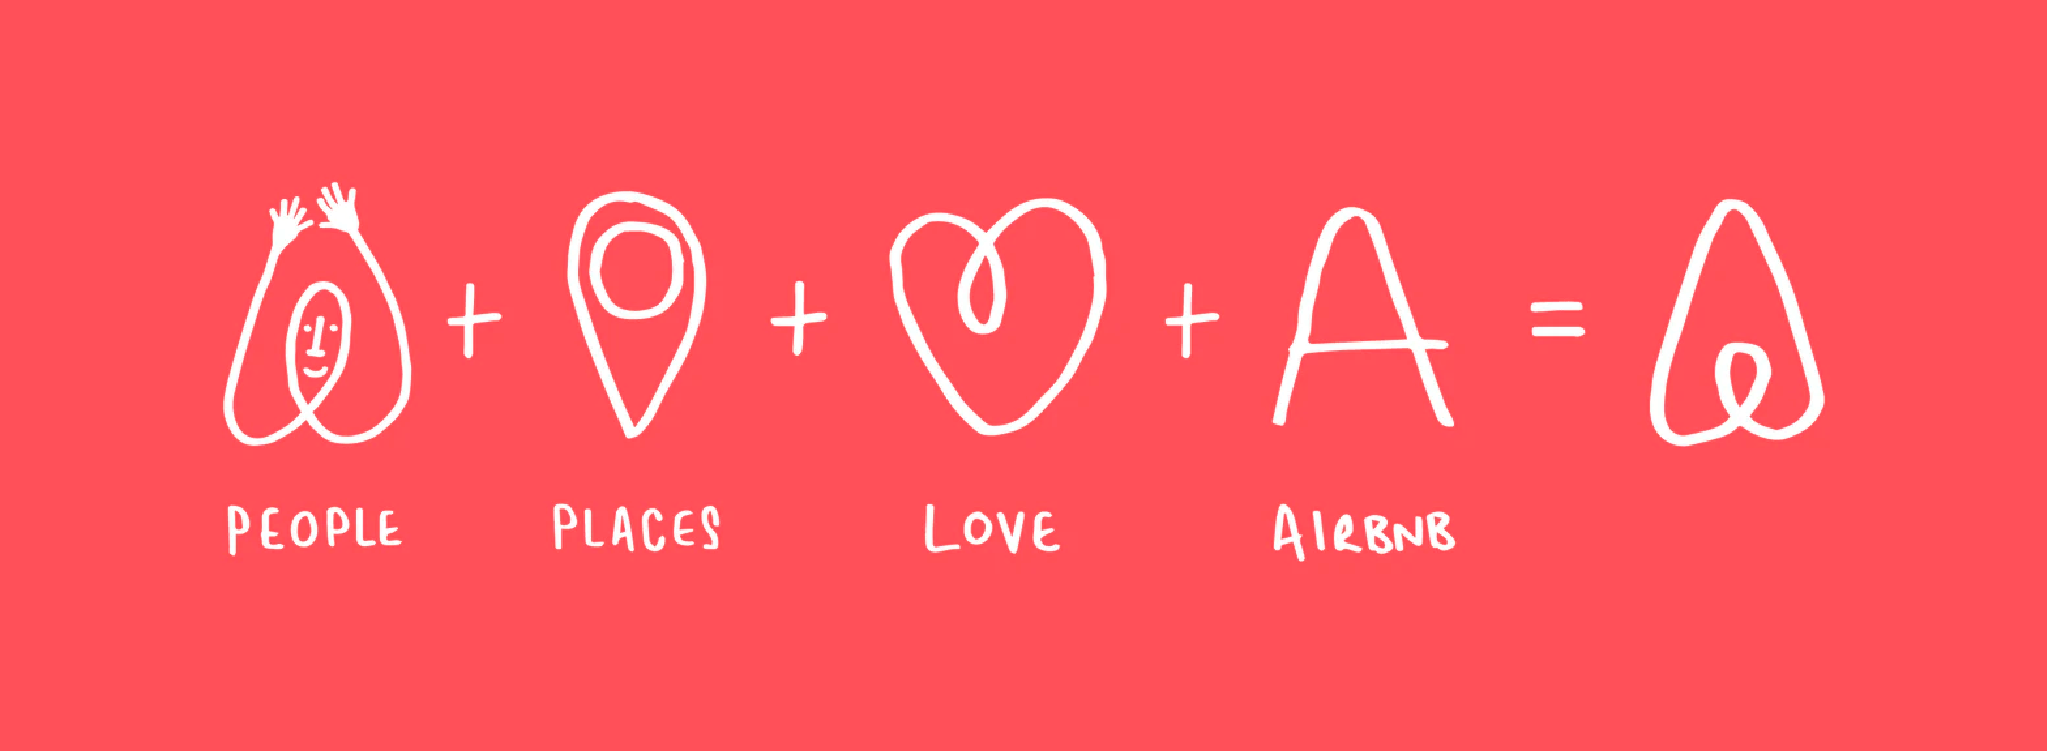 Elements of Airbnb rebranding logo